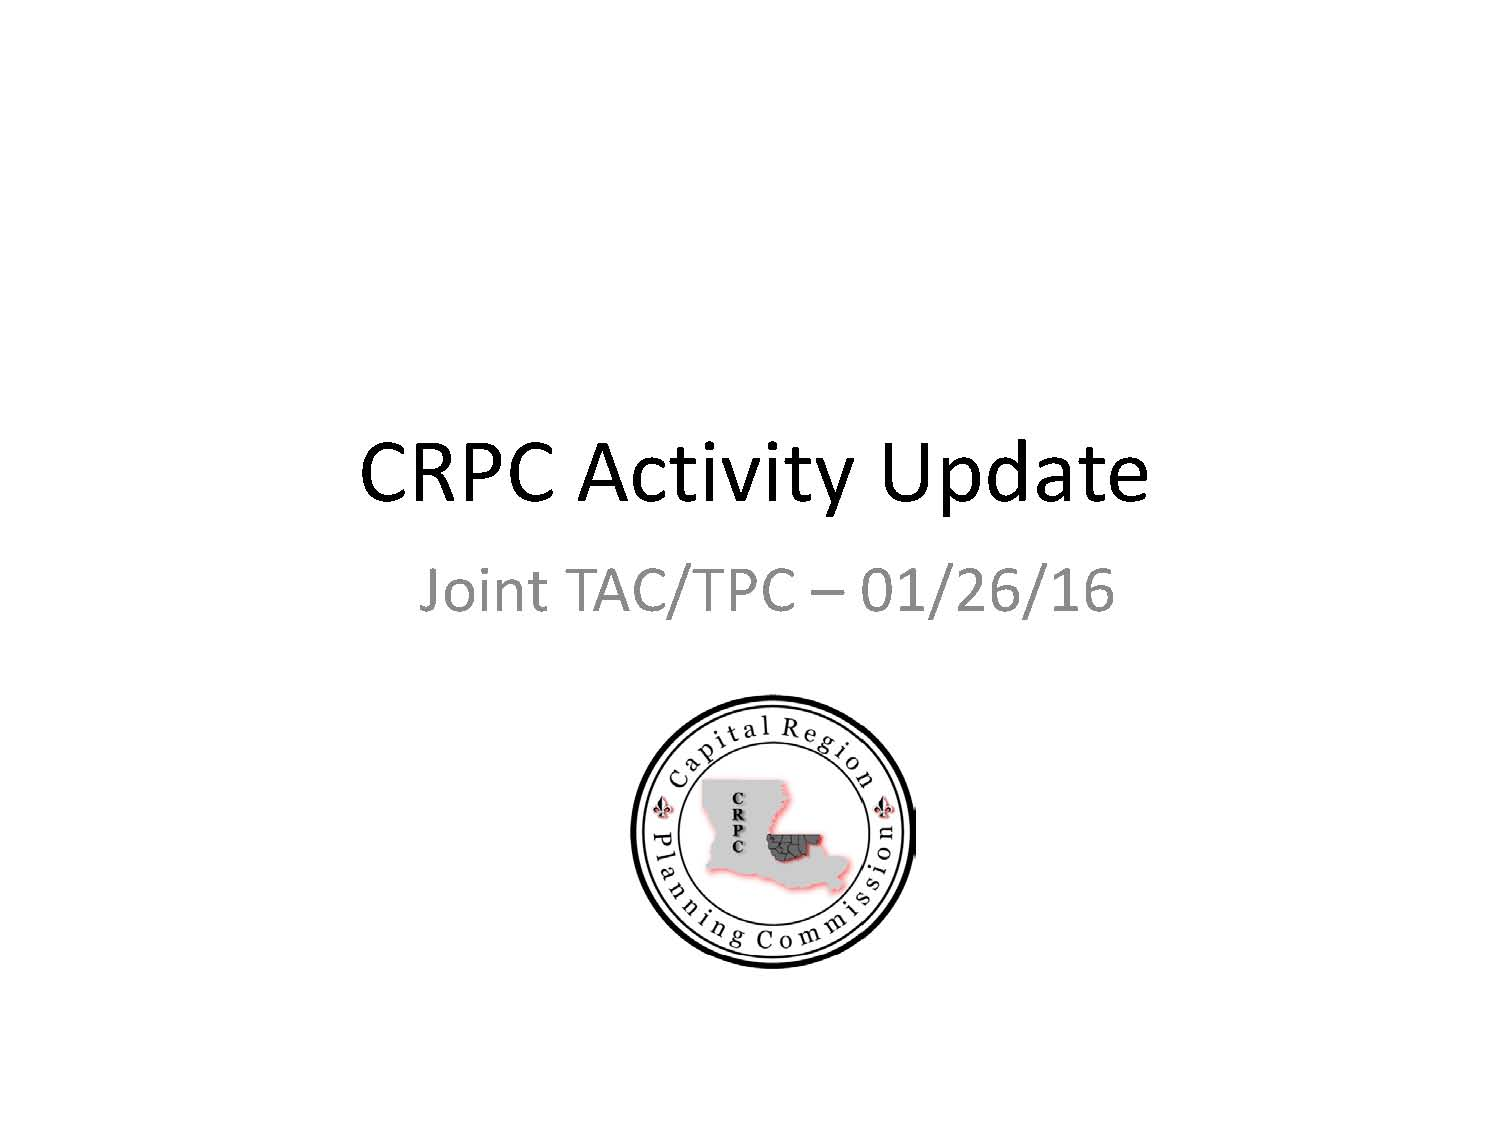 CRPC_Activity_Update_Page_01.jpg